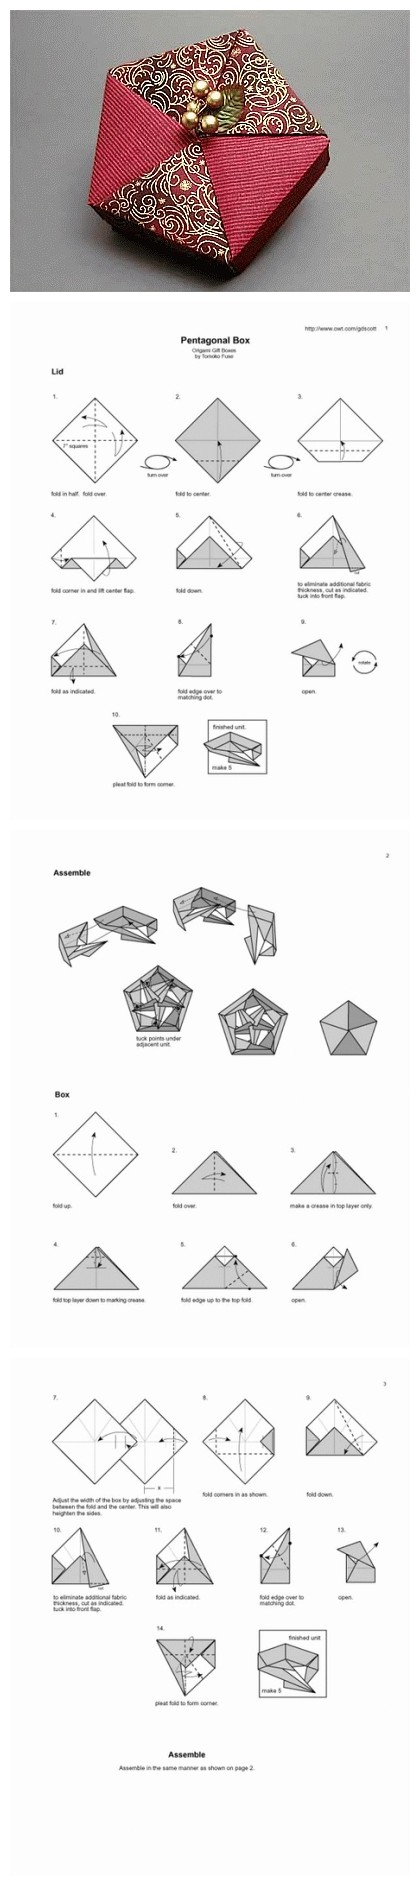 origami pentagonal box with instructions  [ 420 x 1886 Pixel ]